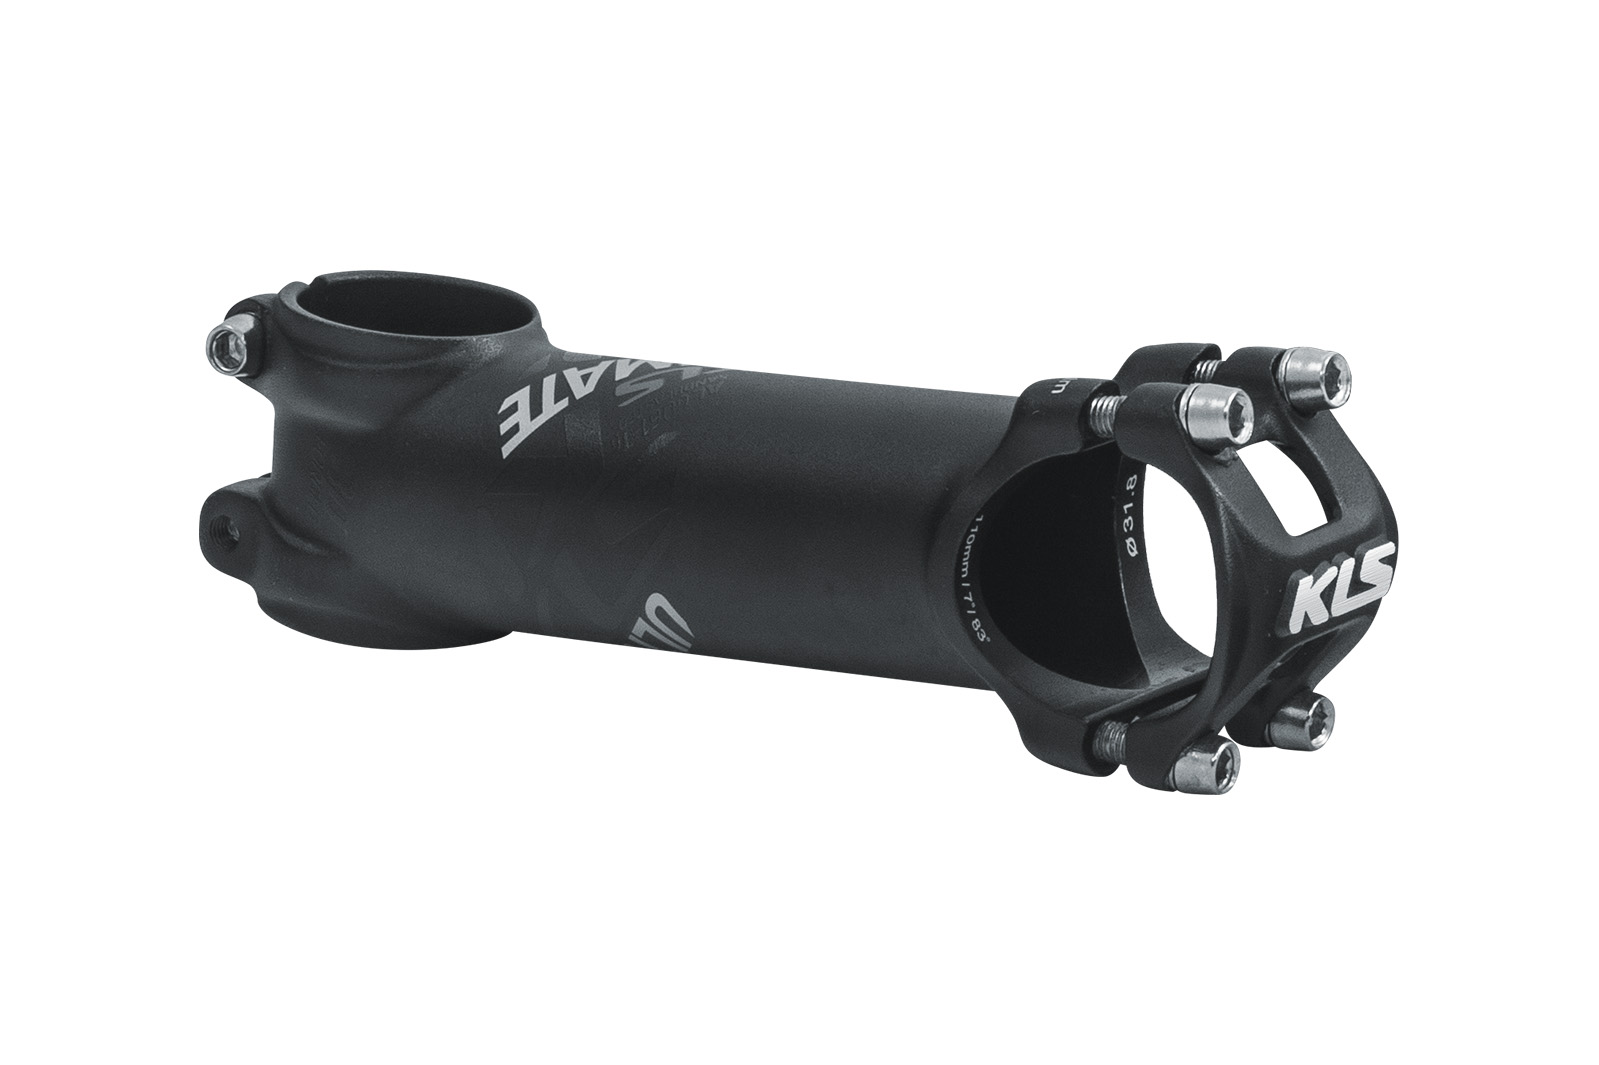 Představec KLS ULTIMATE XC 70 black 017, 120mm